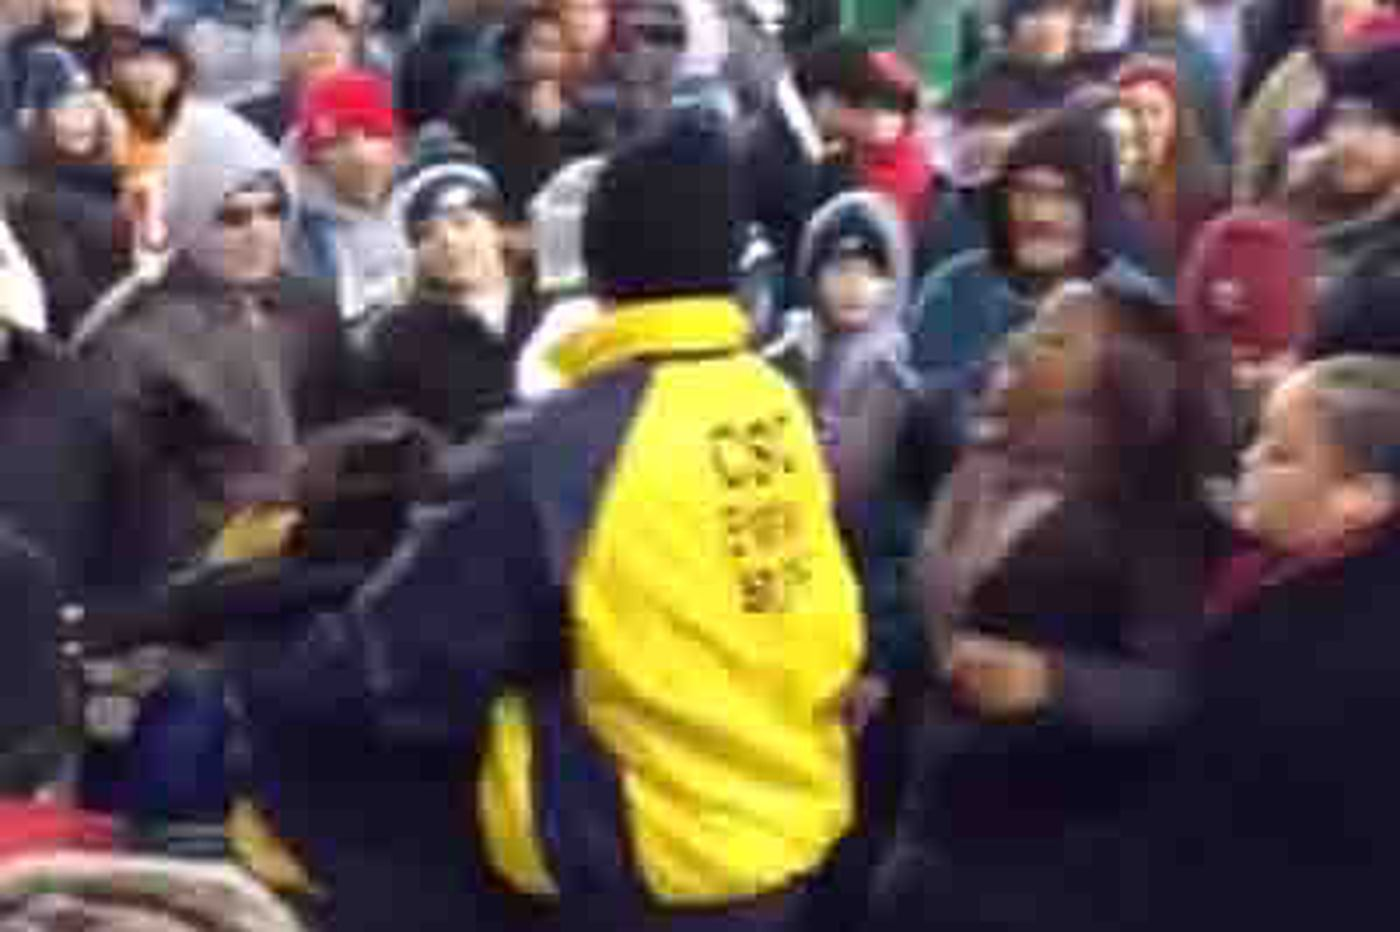 VIDEO: Women fight at Eagles game